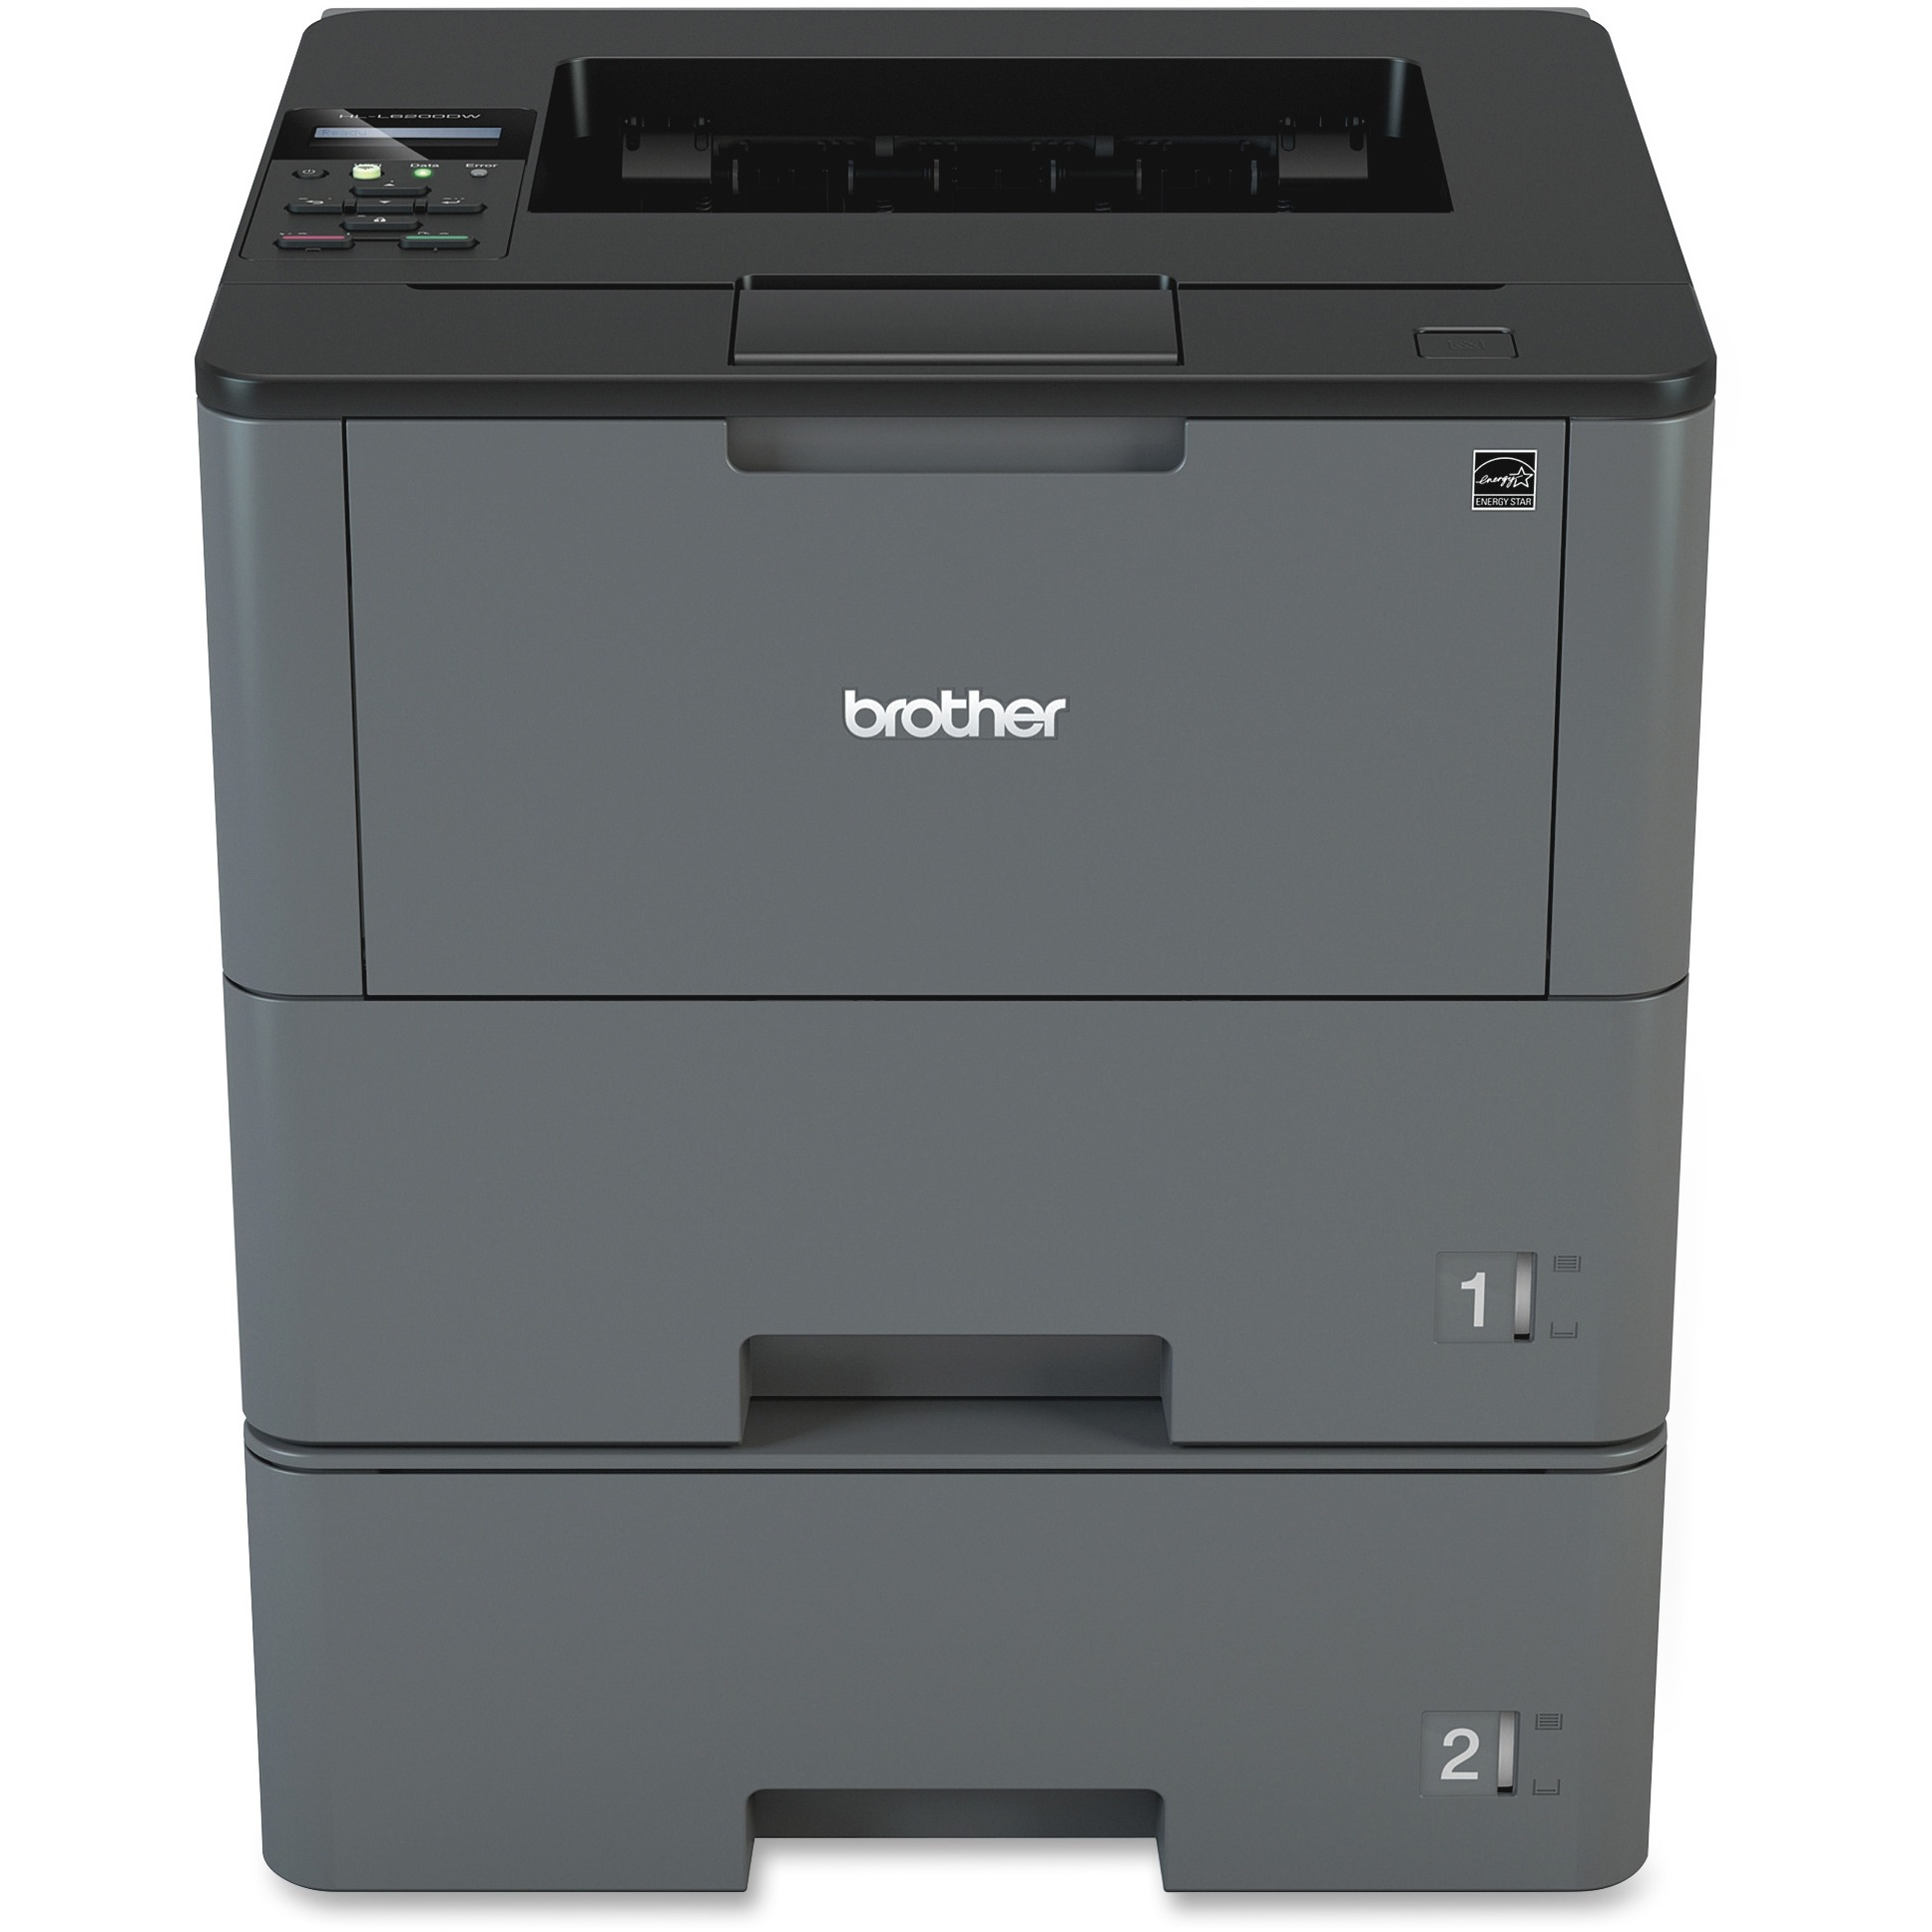 Brother Business Laser Printer HL-L6200DWT Monochrome Duplex Printing by Brother